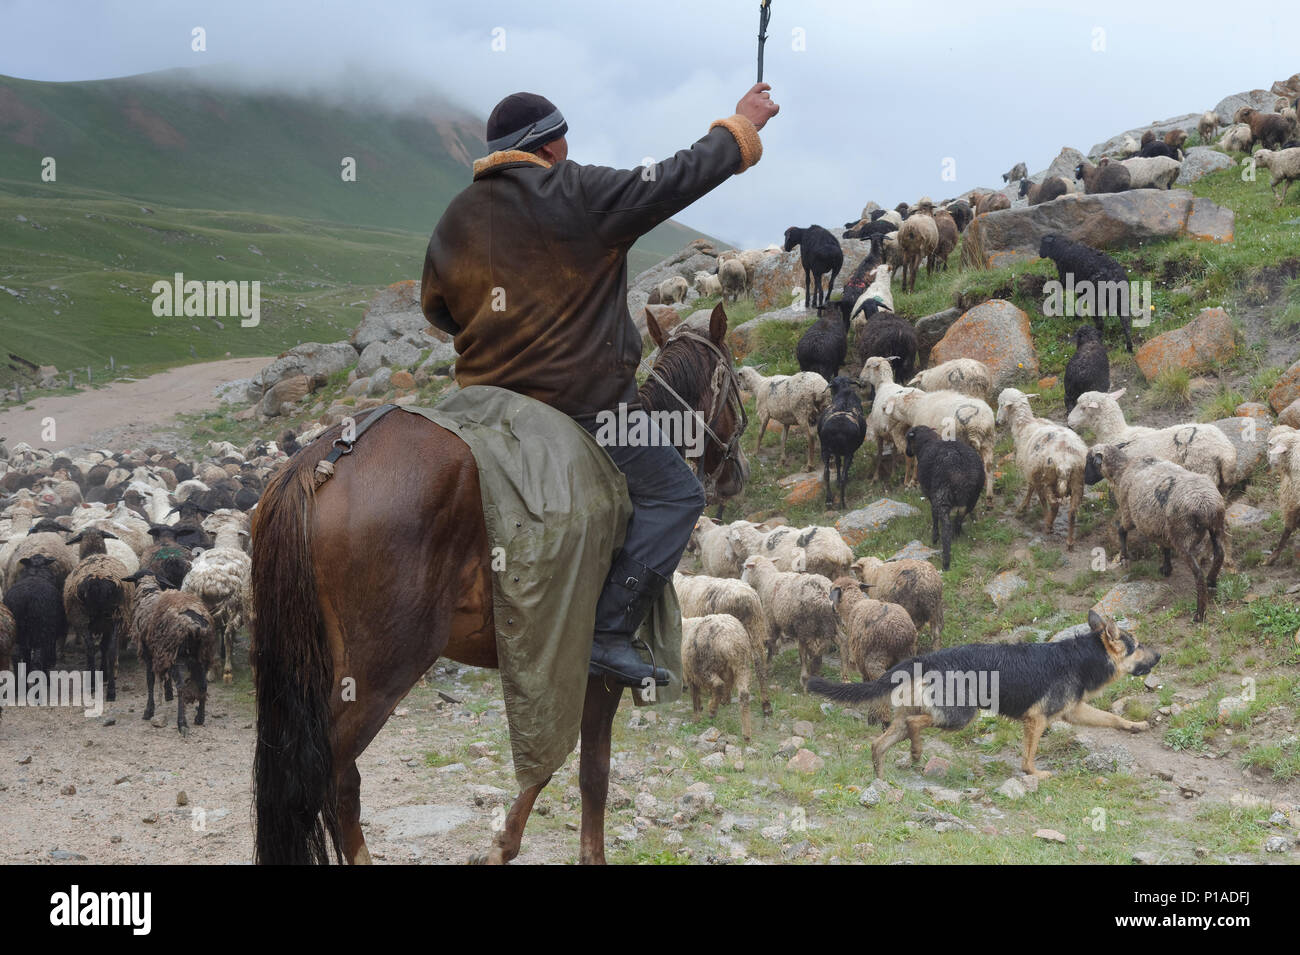 Shepherd guiding his flock of sheep in rain at Tosor Pass, Naryn region, Kyrgyzstan, Central Asia - Stock Image